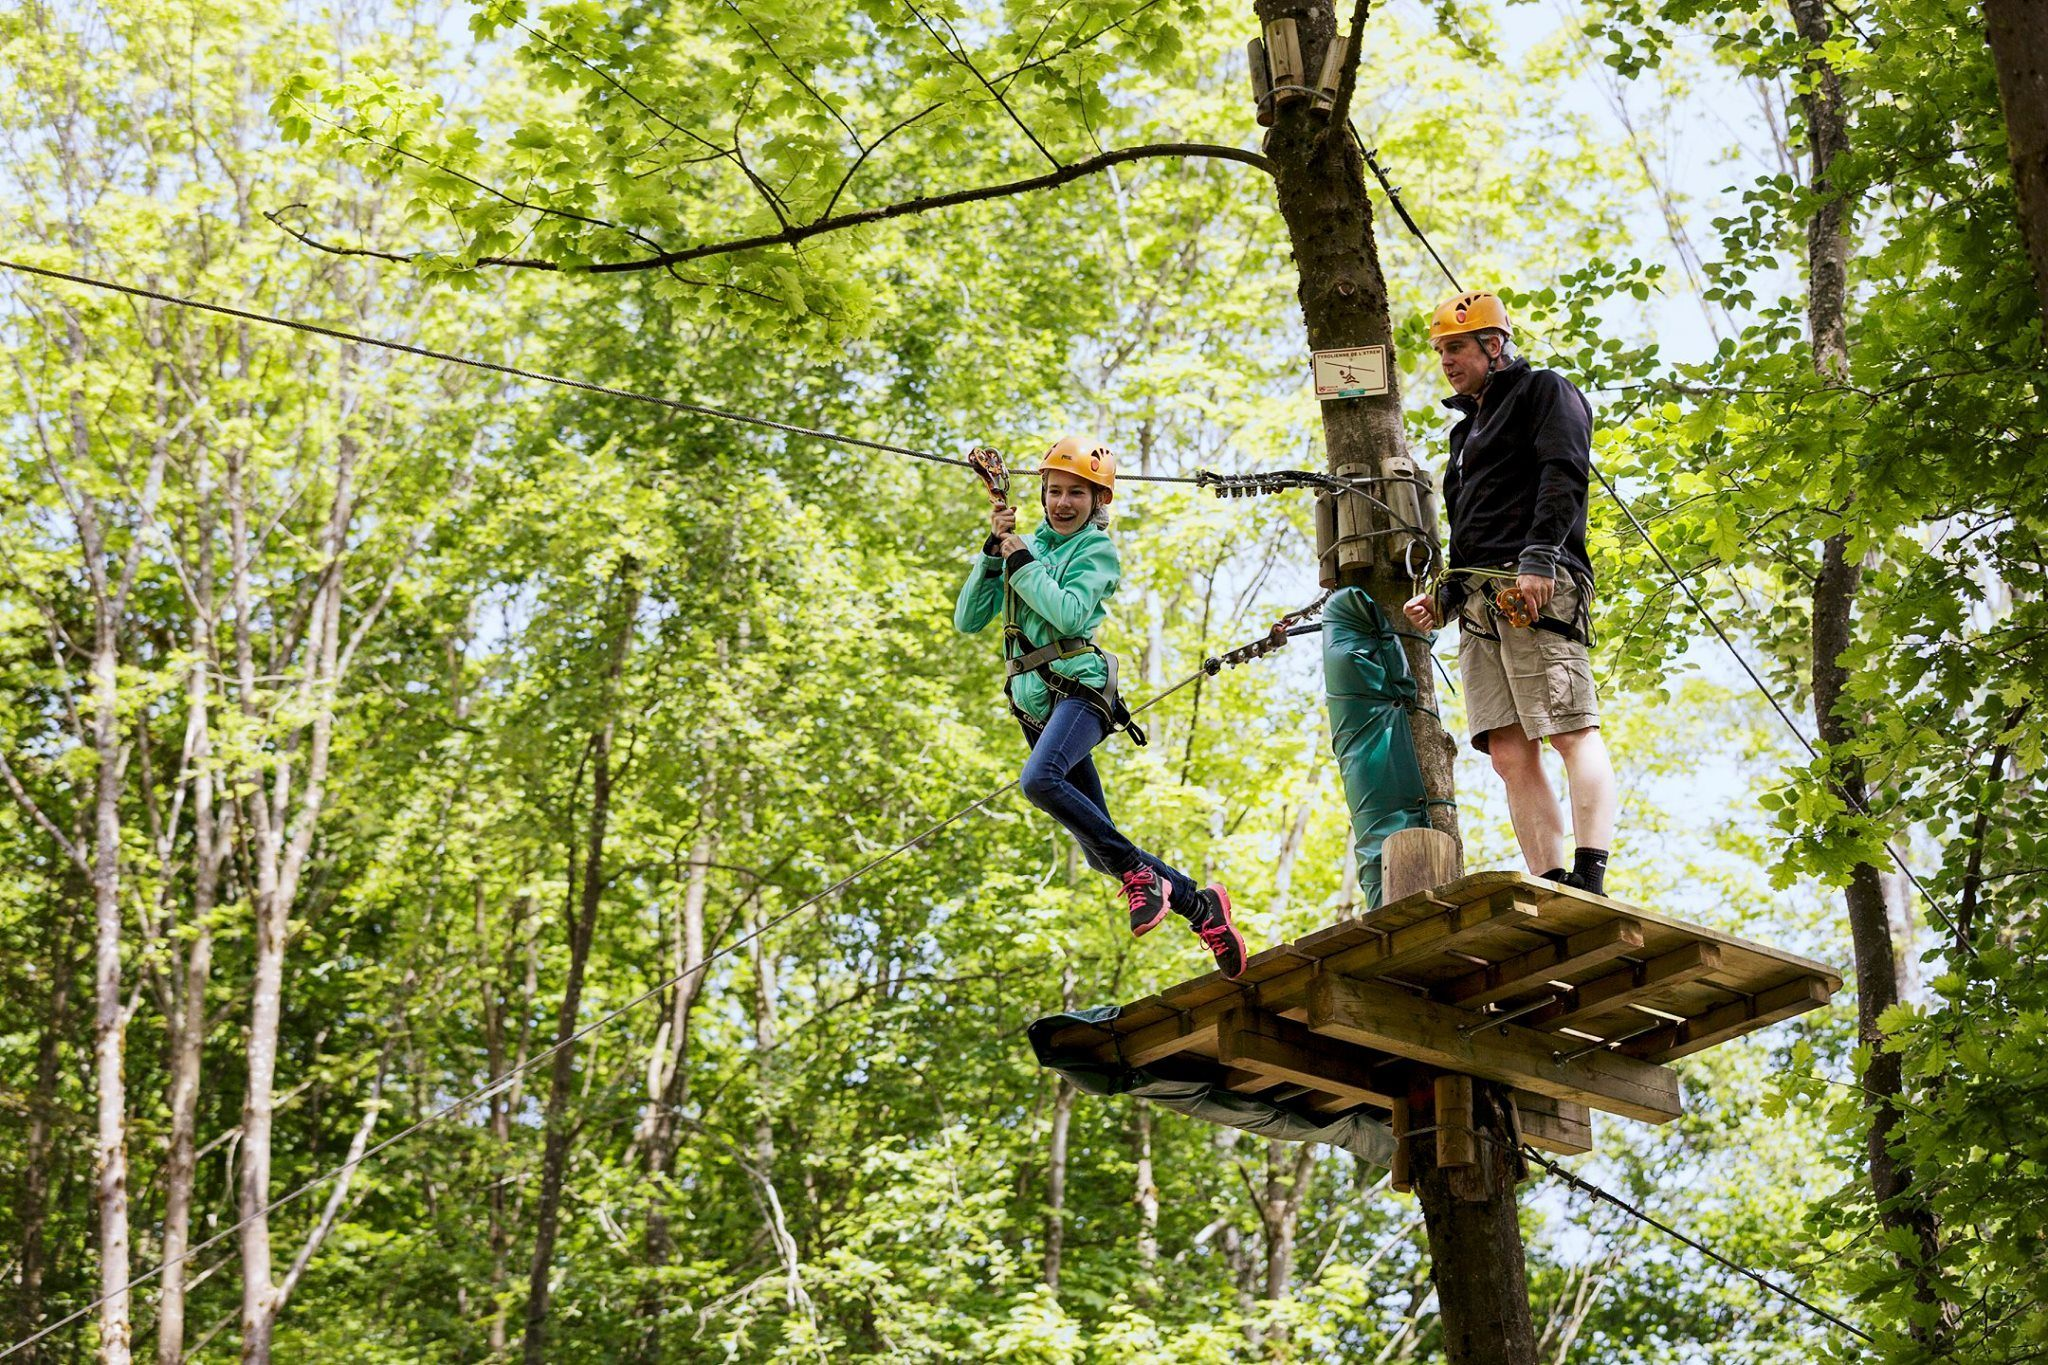 Zip-lining at CenterParks France Trois Forets